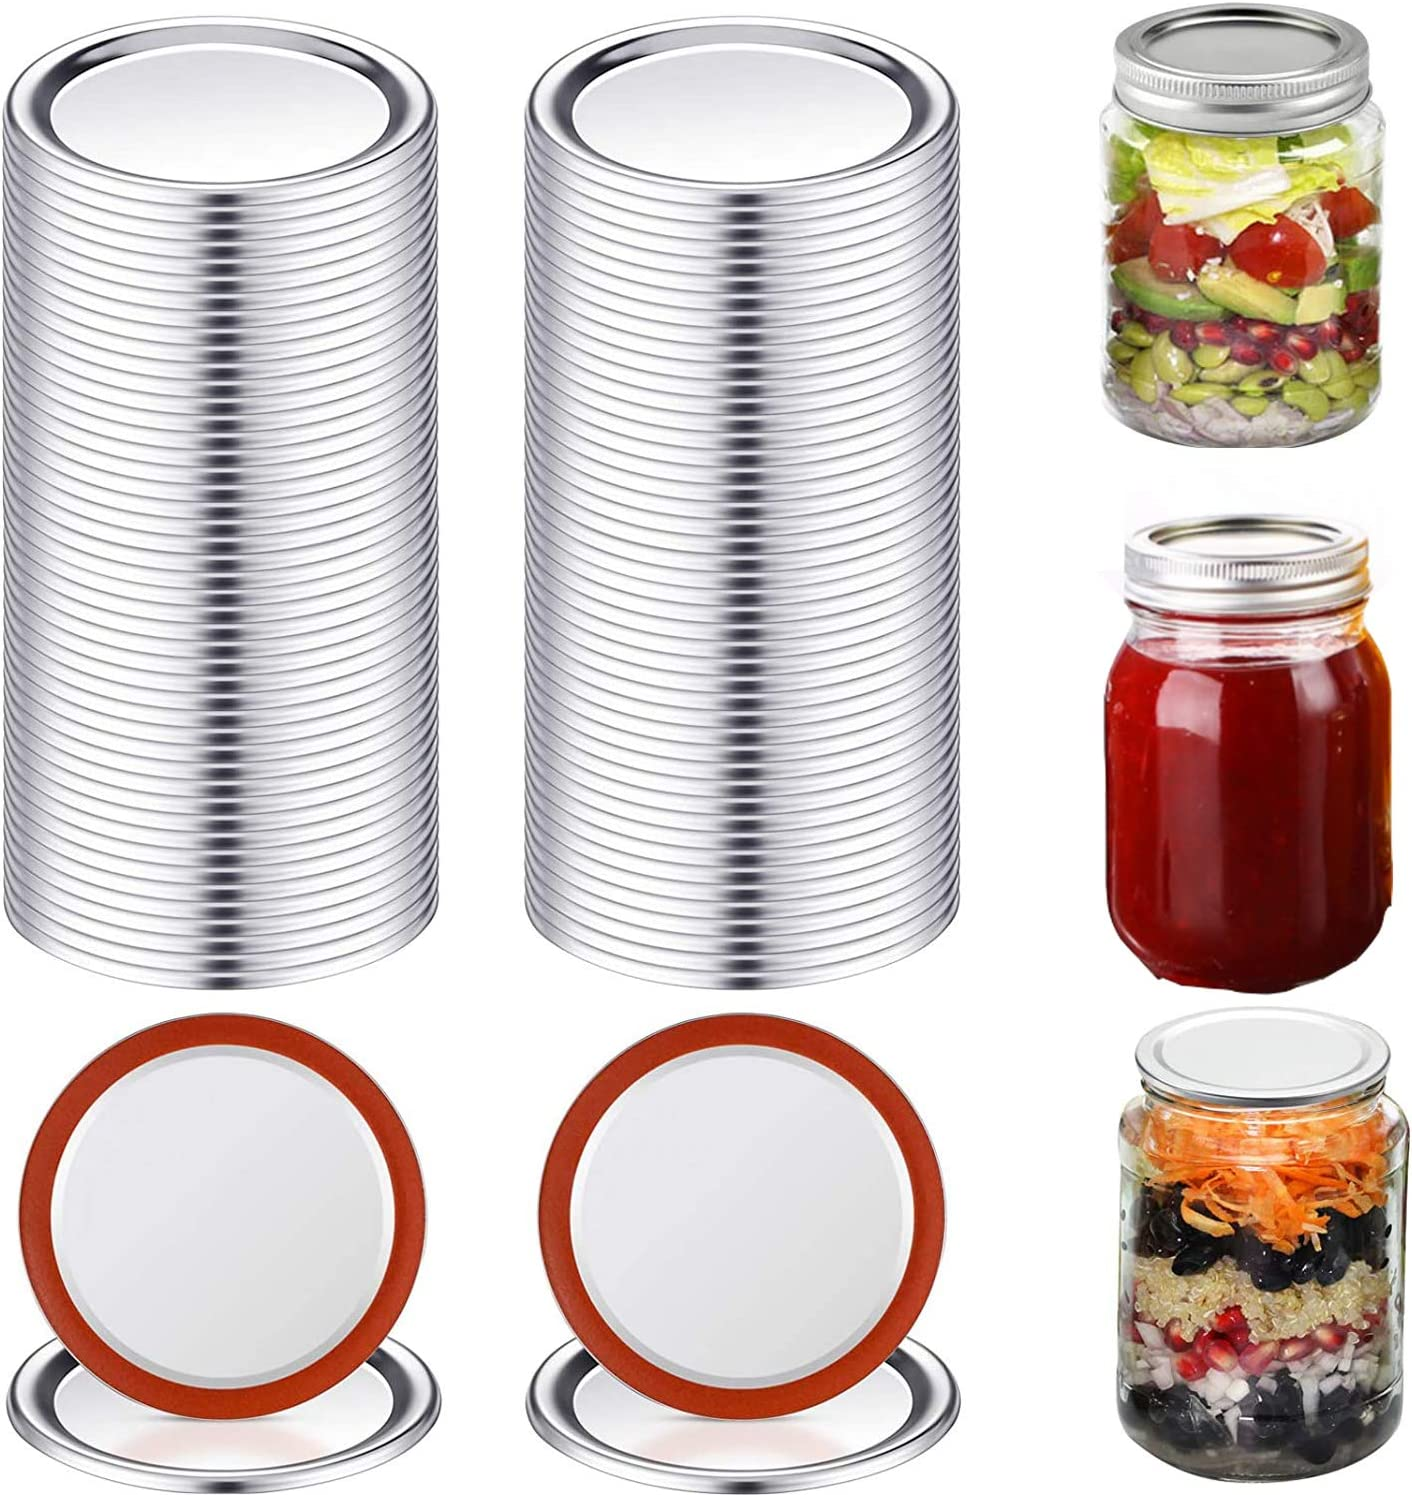 50 Pieces Sale item Canning Max 77% OFF Lids Mouth Mason Regular Stainles